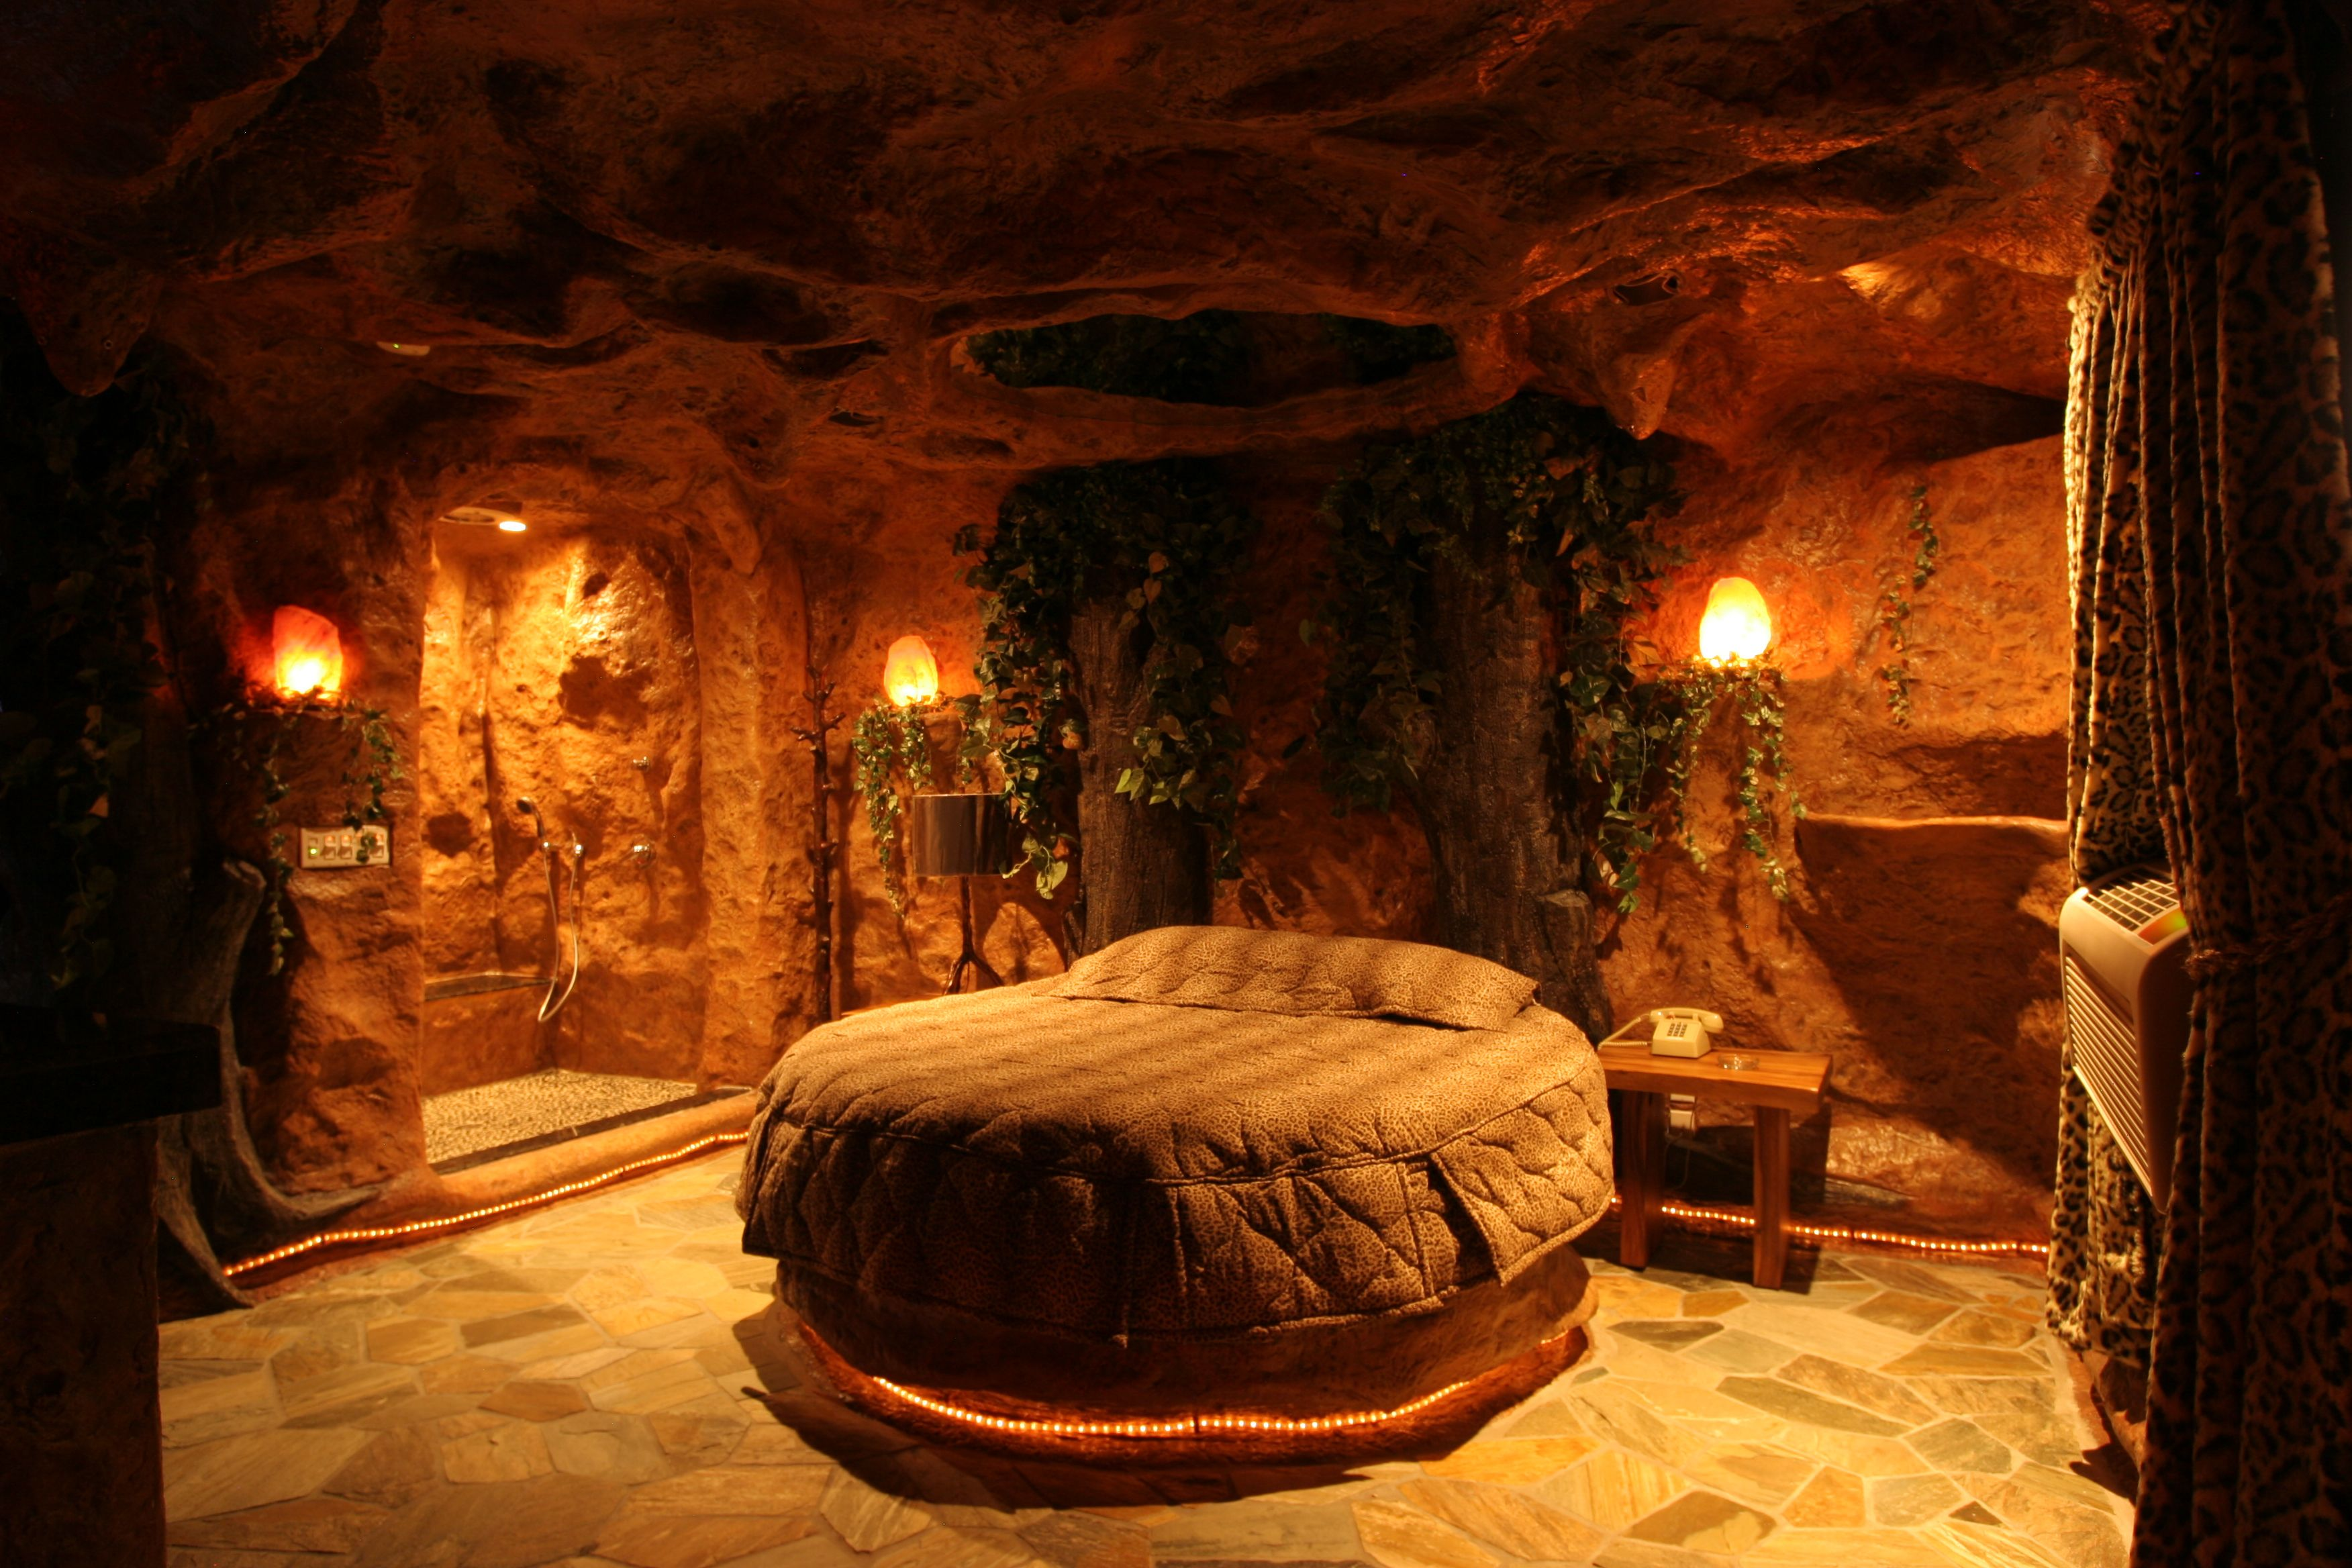 bedrooms bedroom decor unusual hotels caves the cave fantasy room